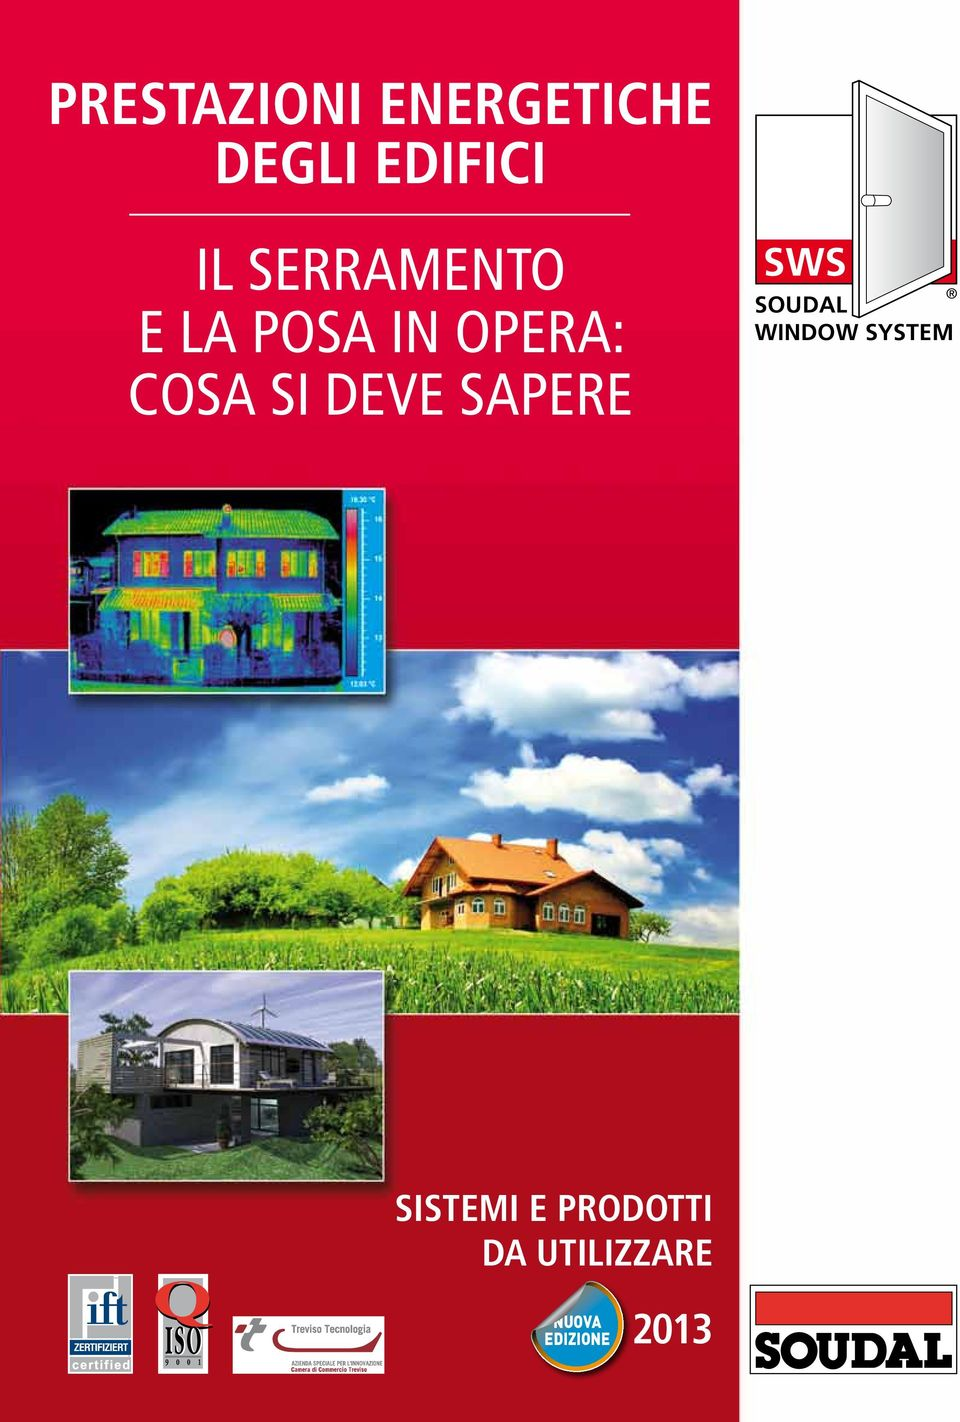 DEVE SAPERE SWS SOUDAL WINDOW SYSTEM